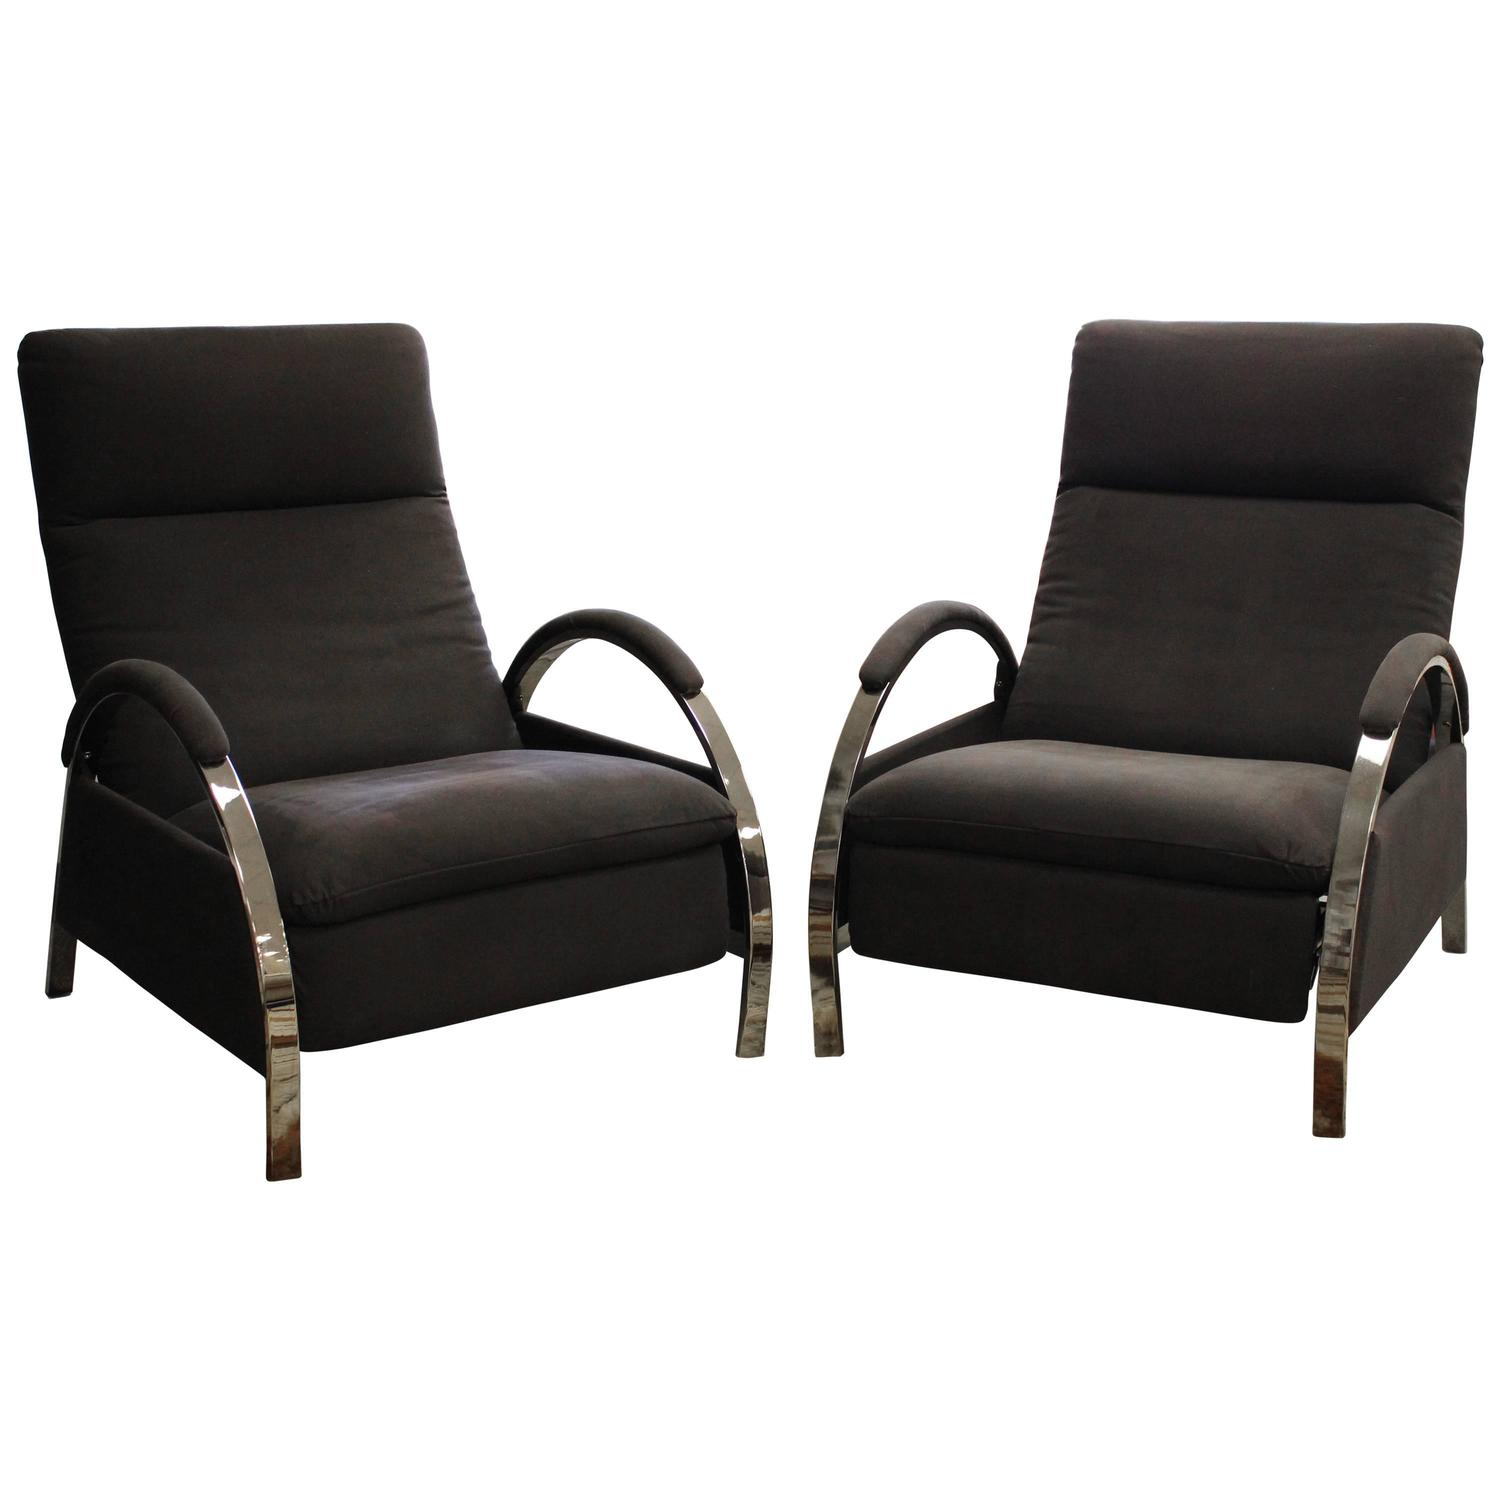 Matching pair of george mulhauser for dia model 5668 13 for Matching lounge furniture